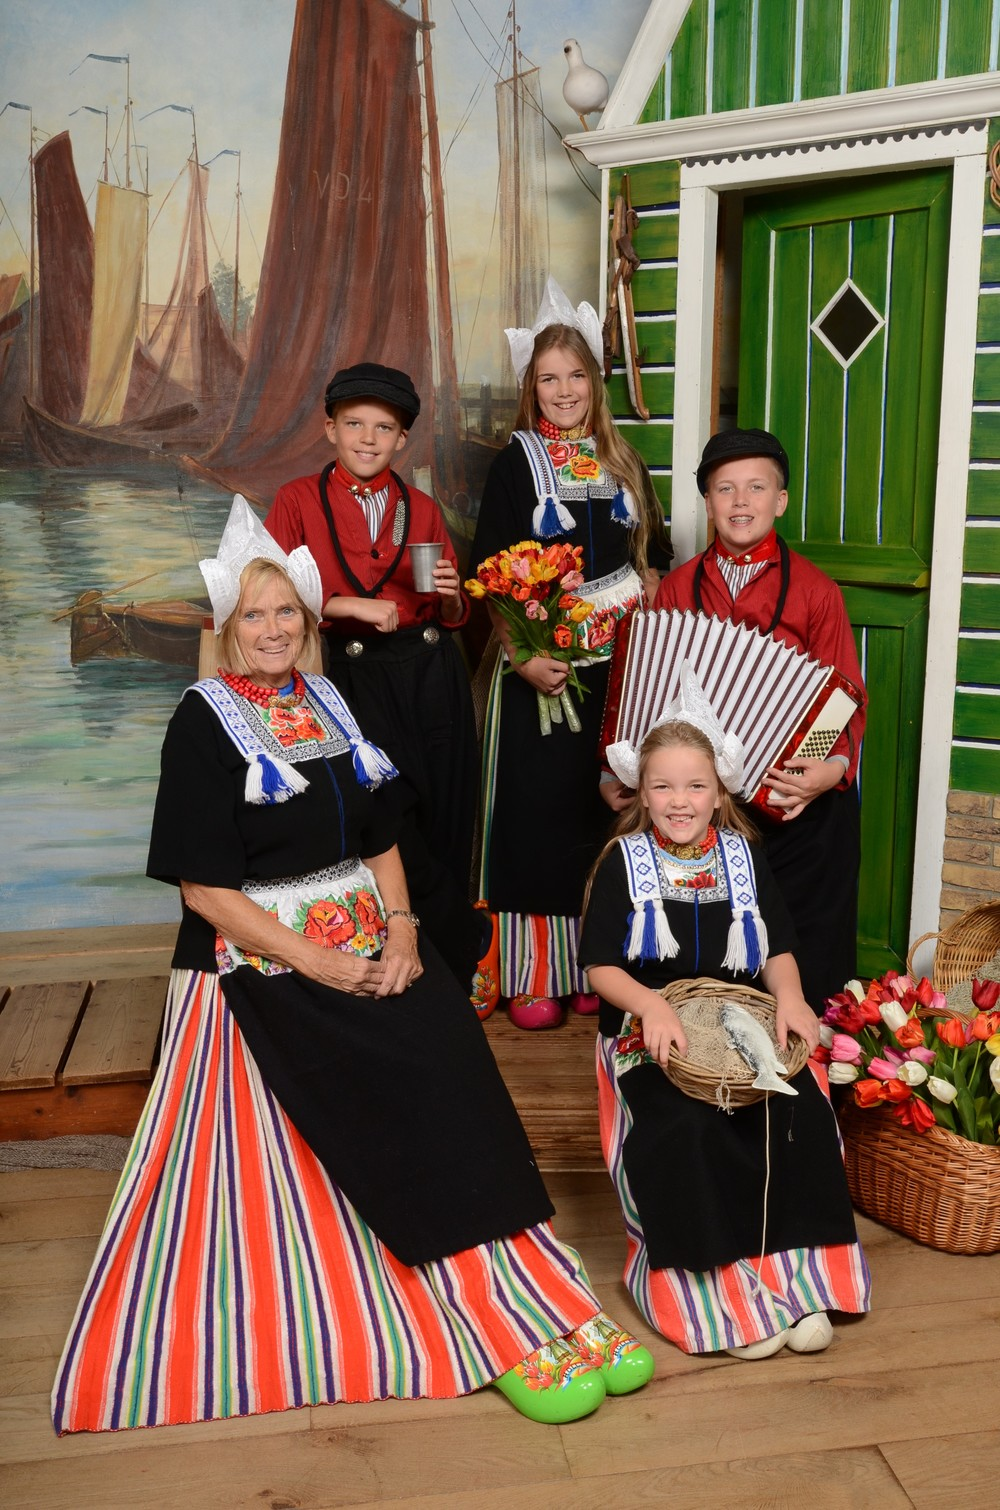 Mom and kids in Volendam costume